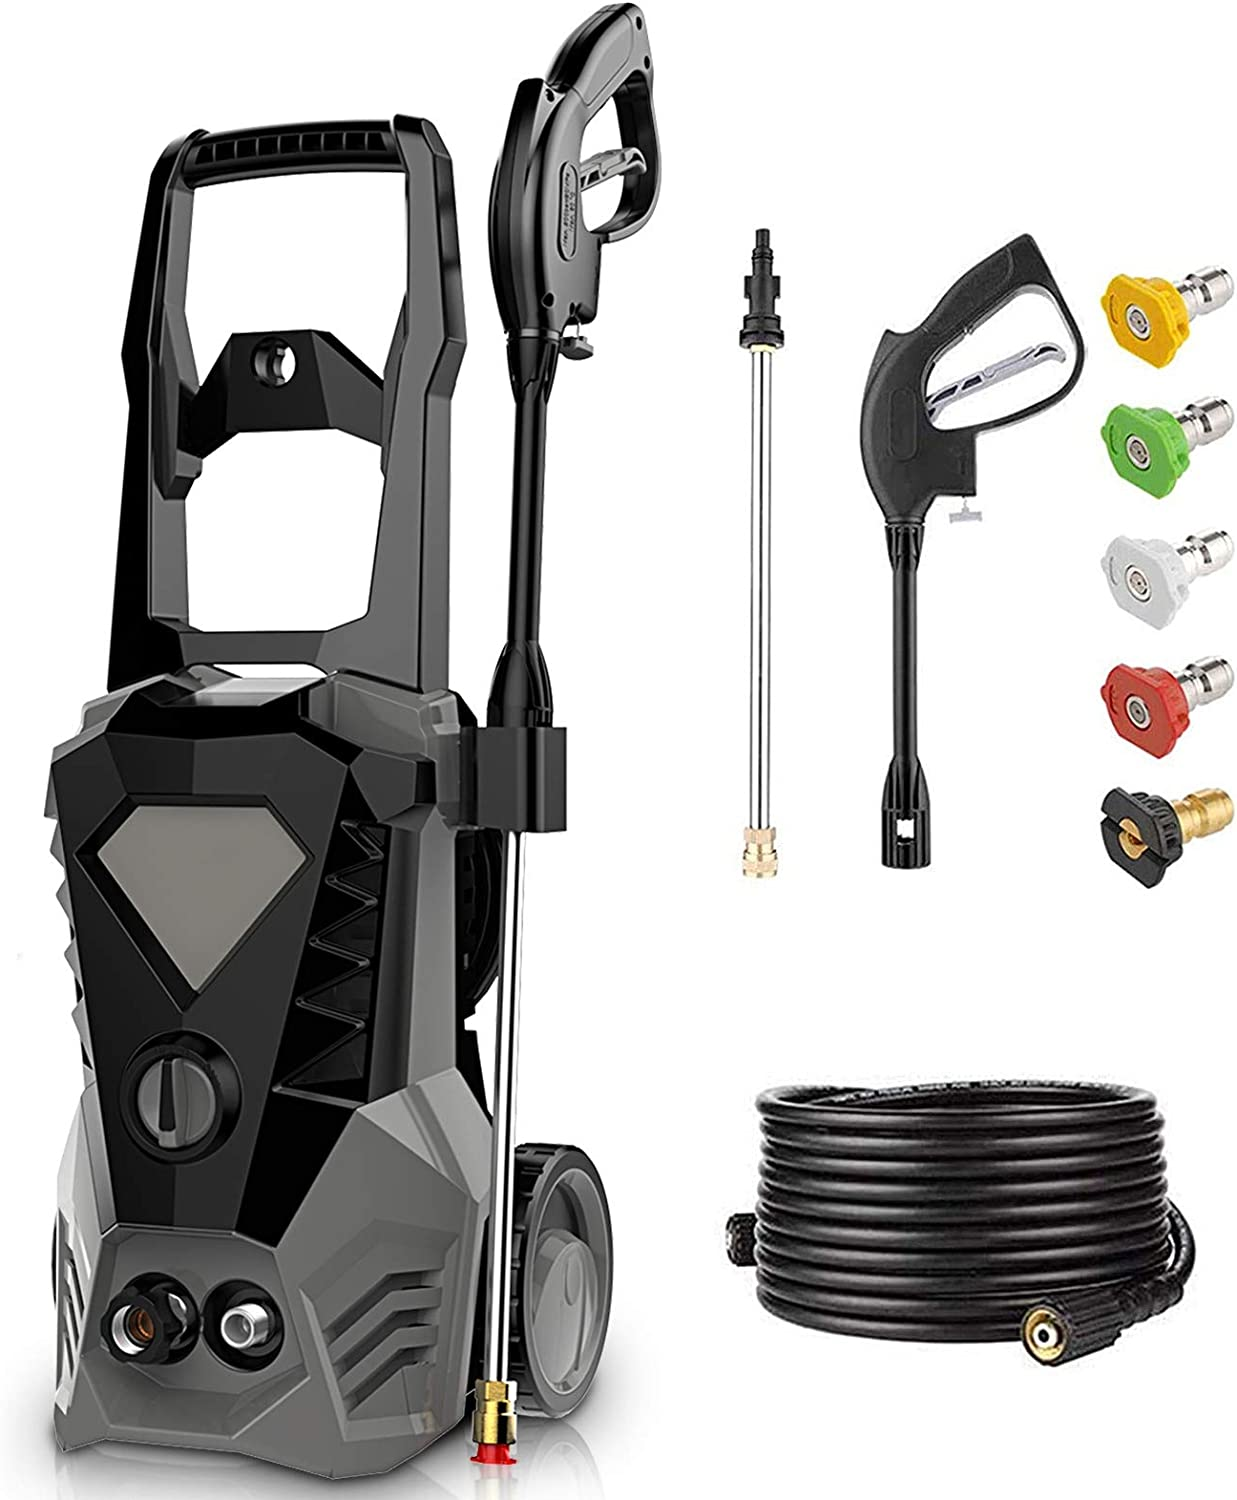 Image result for Electric Pressure Washer Machine